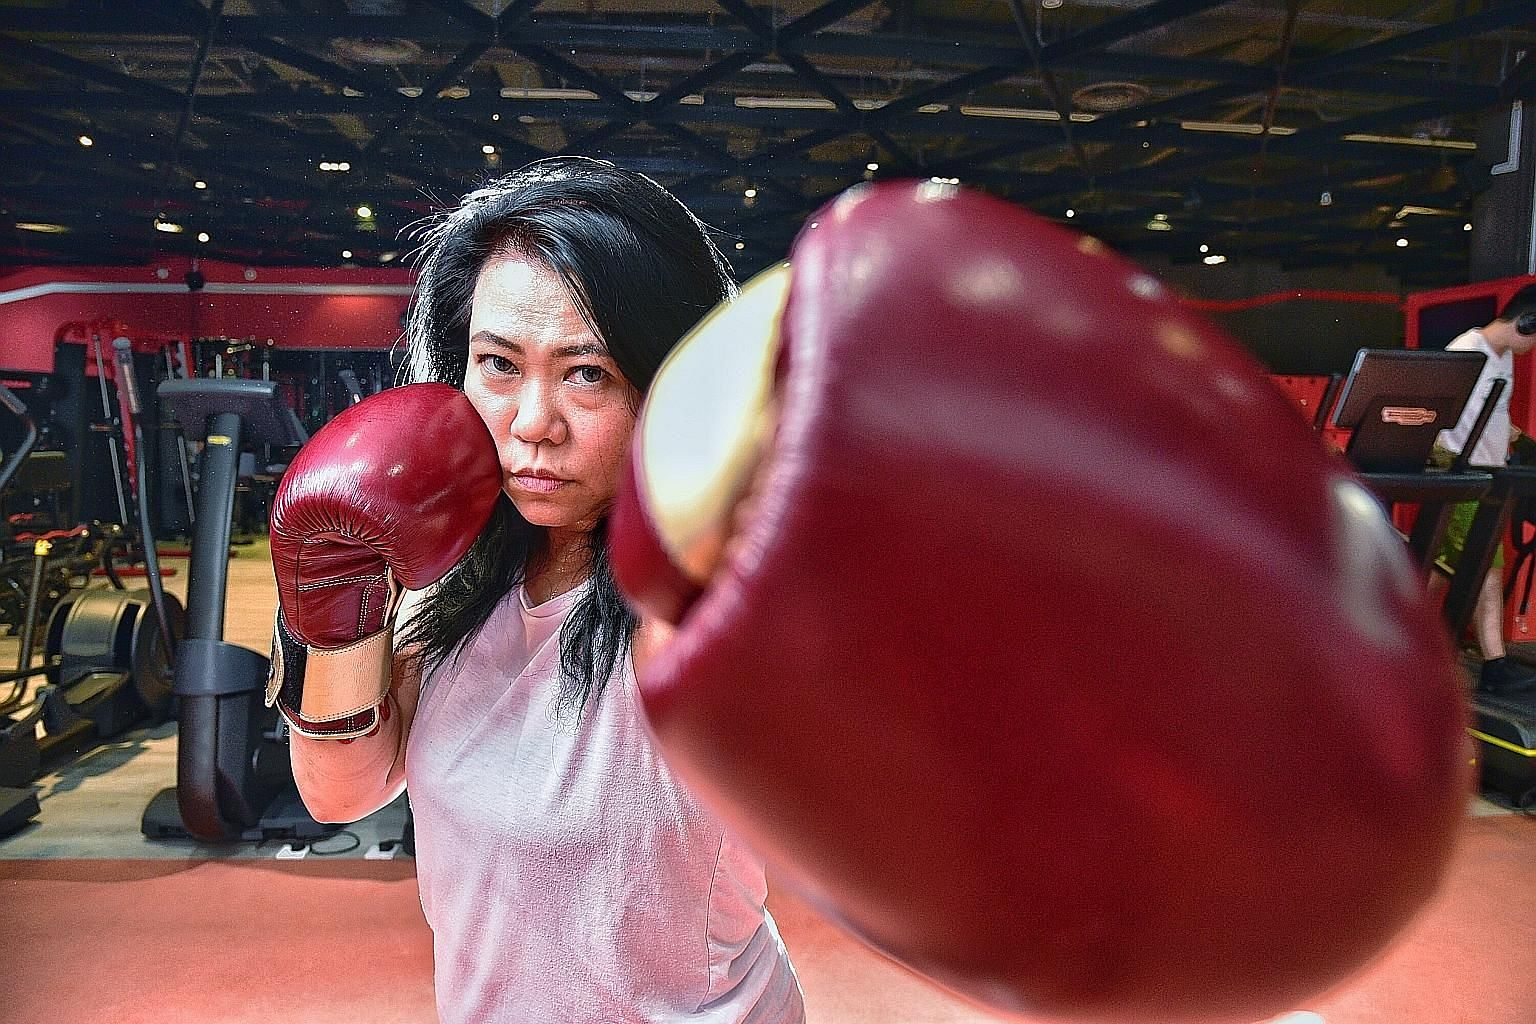 Boxing and muay thai practitioner Amy Jemaat.